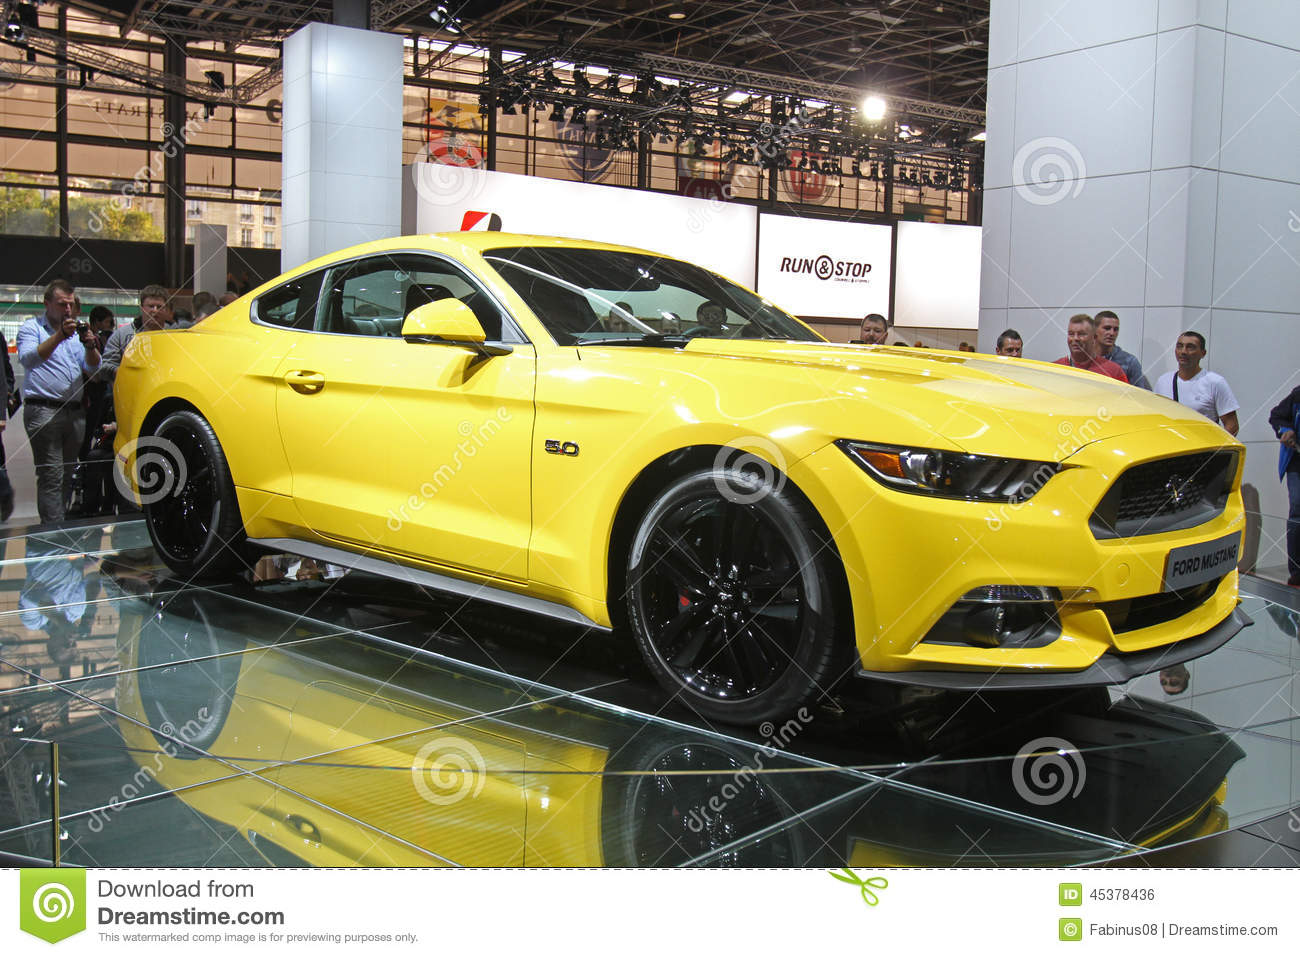 jaune ford mustang 2015 au salon de l 39 auto de paris photo ditorial image 45378436. Black Bedroom Furniture Sets. Home Design Ideas